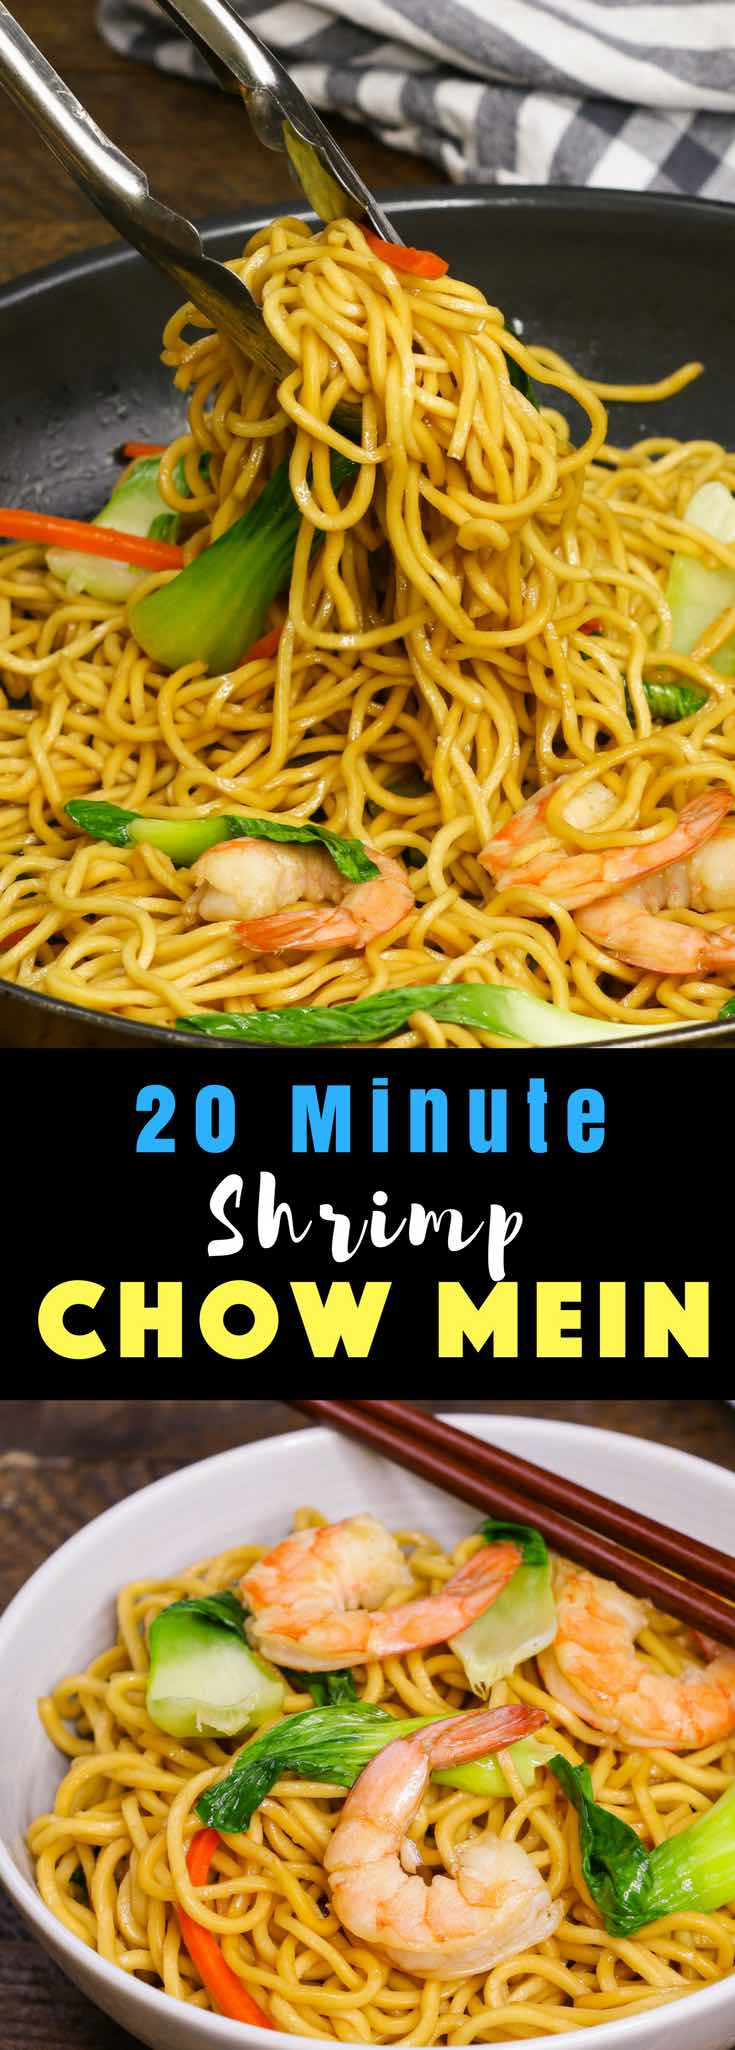 This Shrimp Chow Mein is a quick and easy one pot meal, loaded with sizzling shrimp, flavorful vegetables and fried noodles. It's so delicious and you will find yourself making it again and again as a quick weeknight dinner! #ShrimpRecipe #ChowMein #ShrimpChowMein